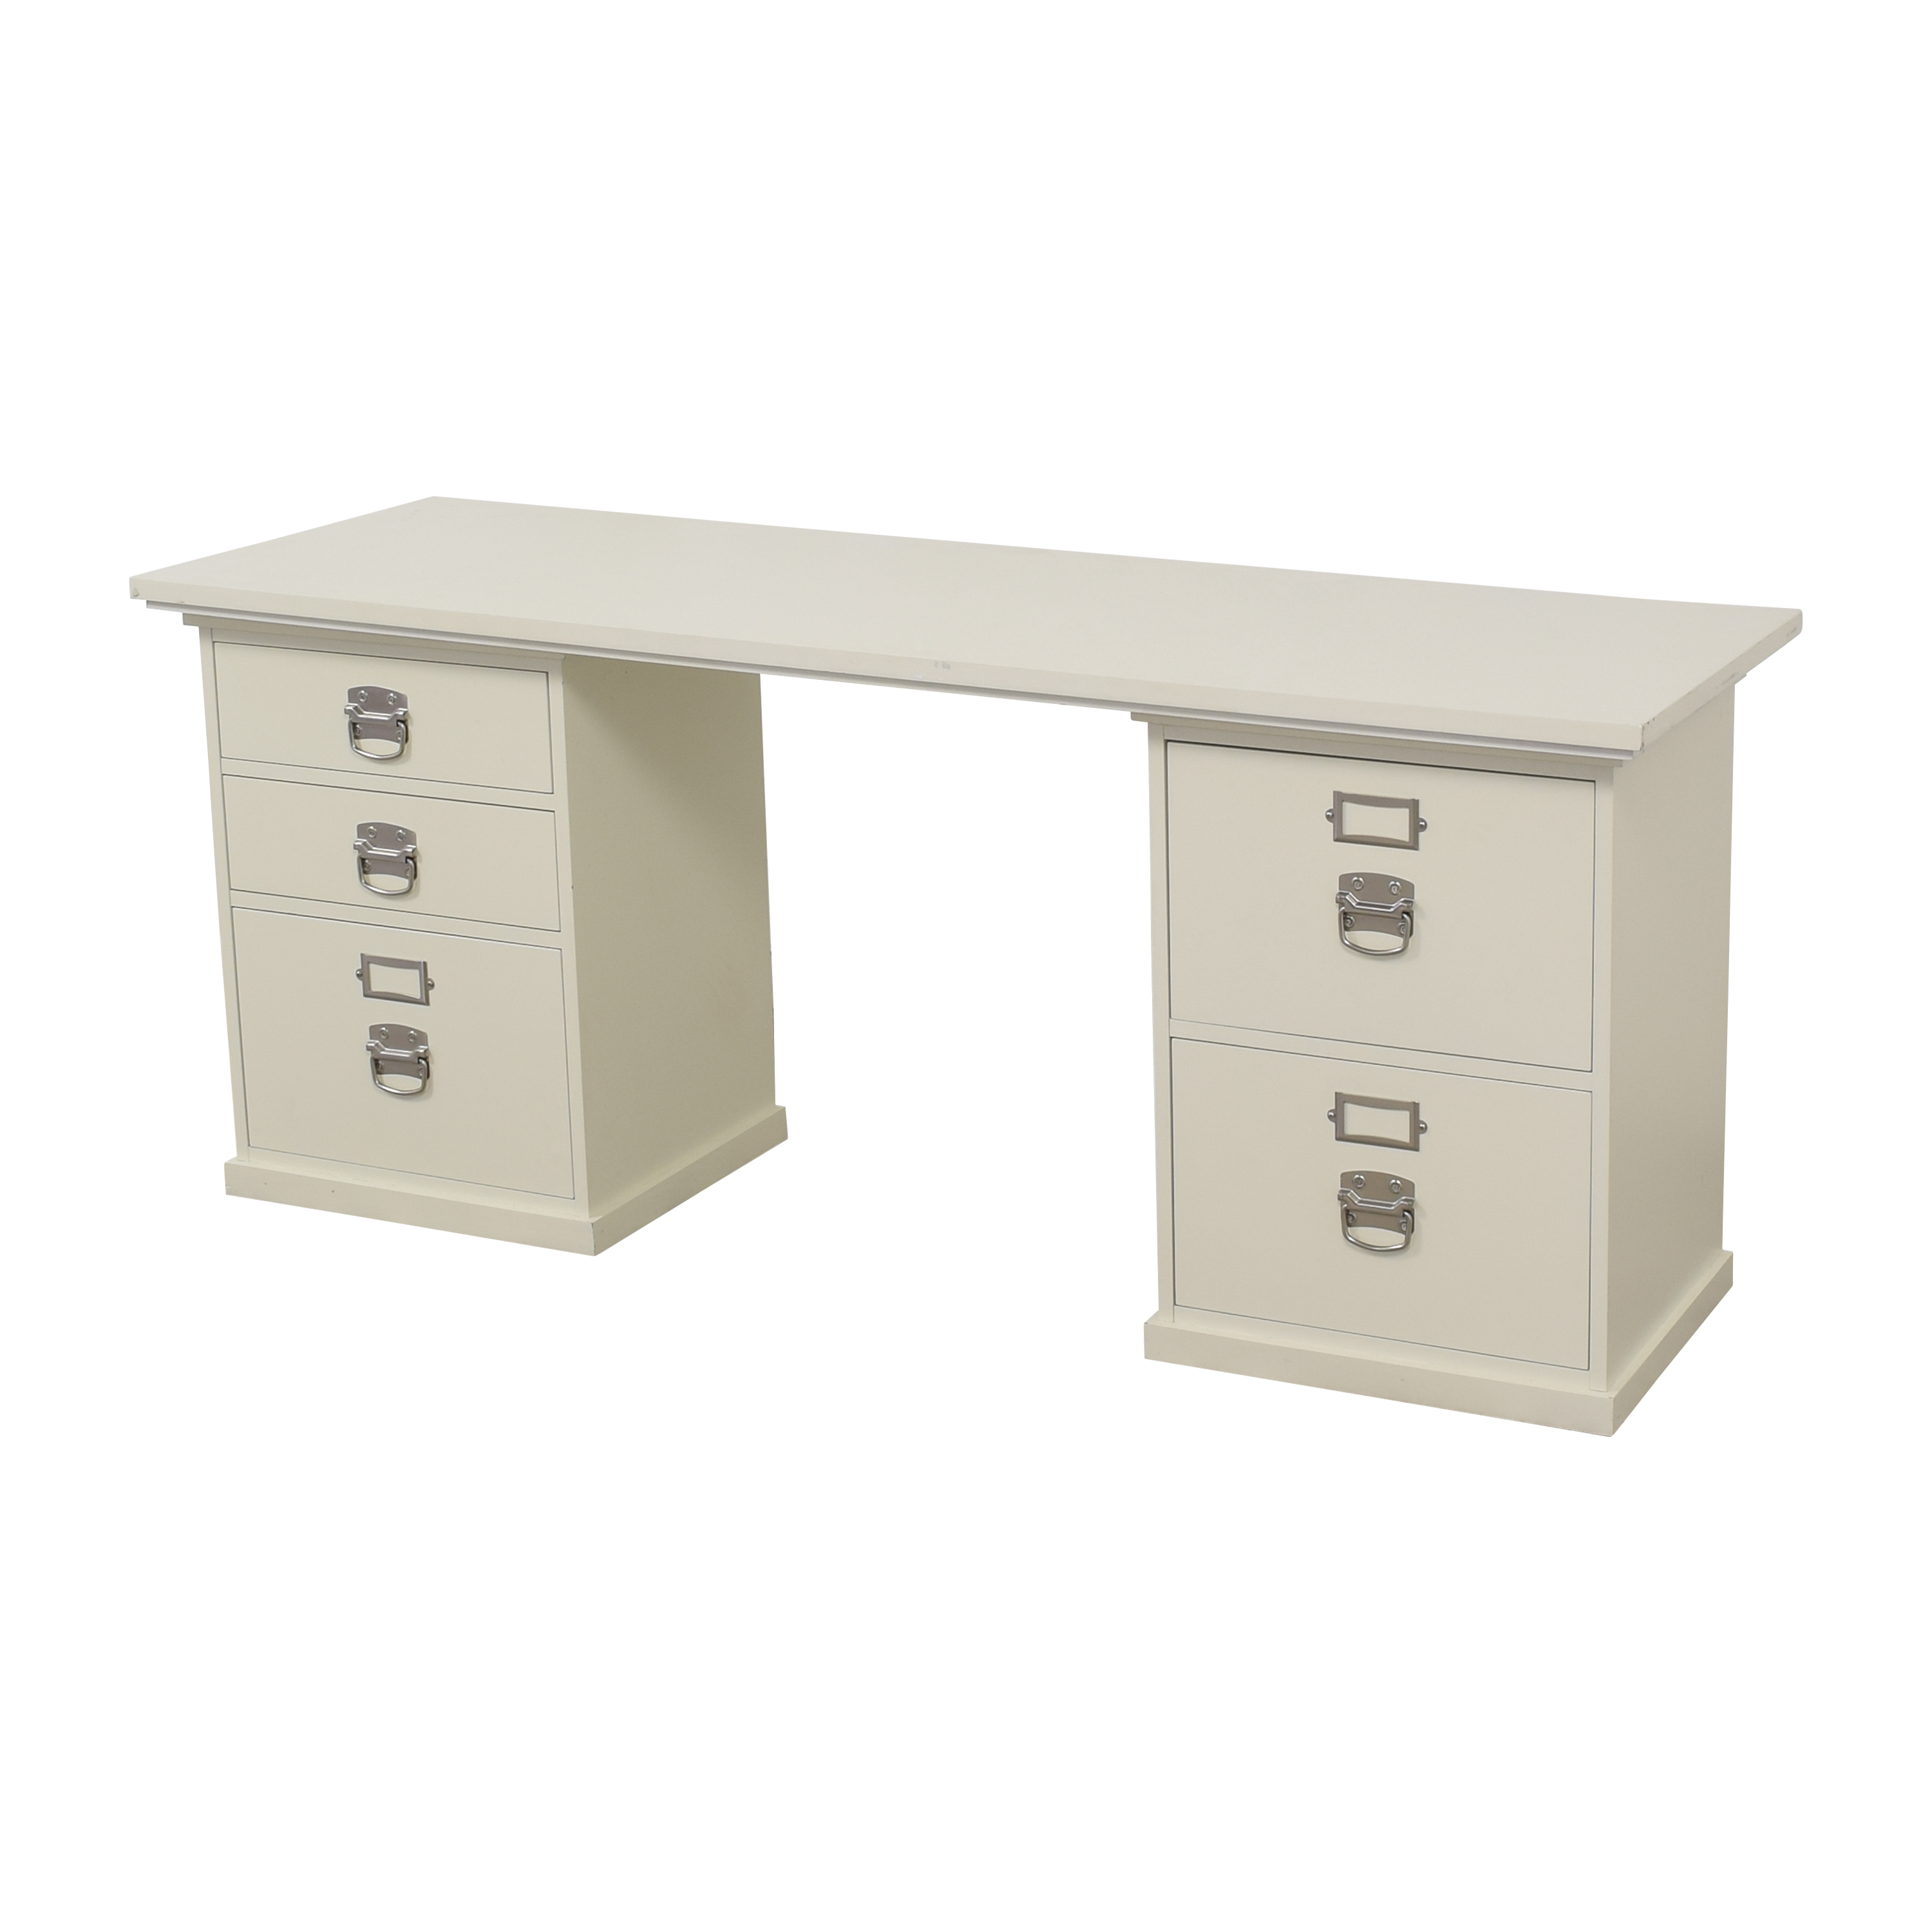 Pottery Barn Pottery Barn Bedford Desk with Five Drawers on sale